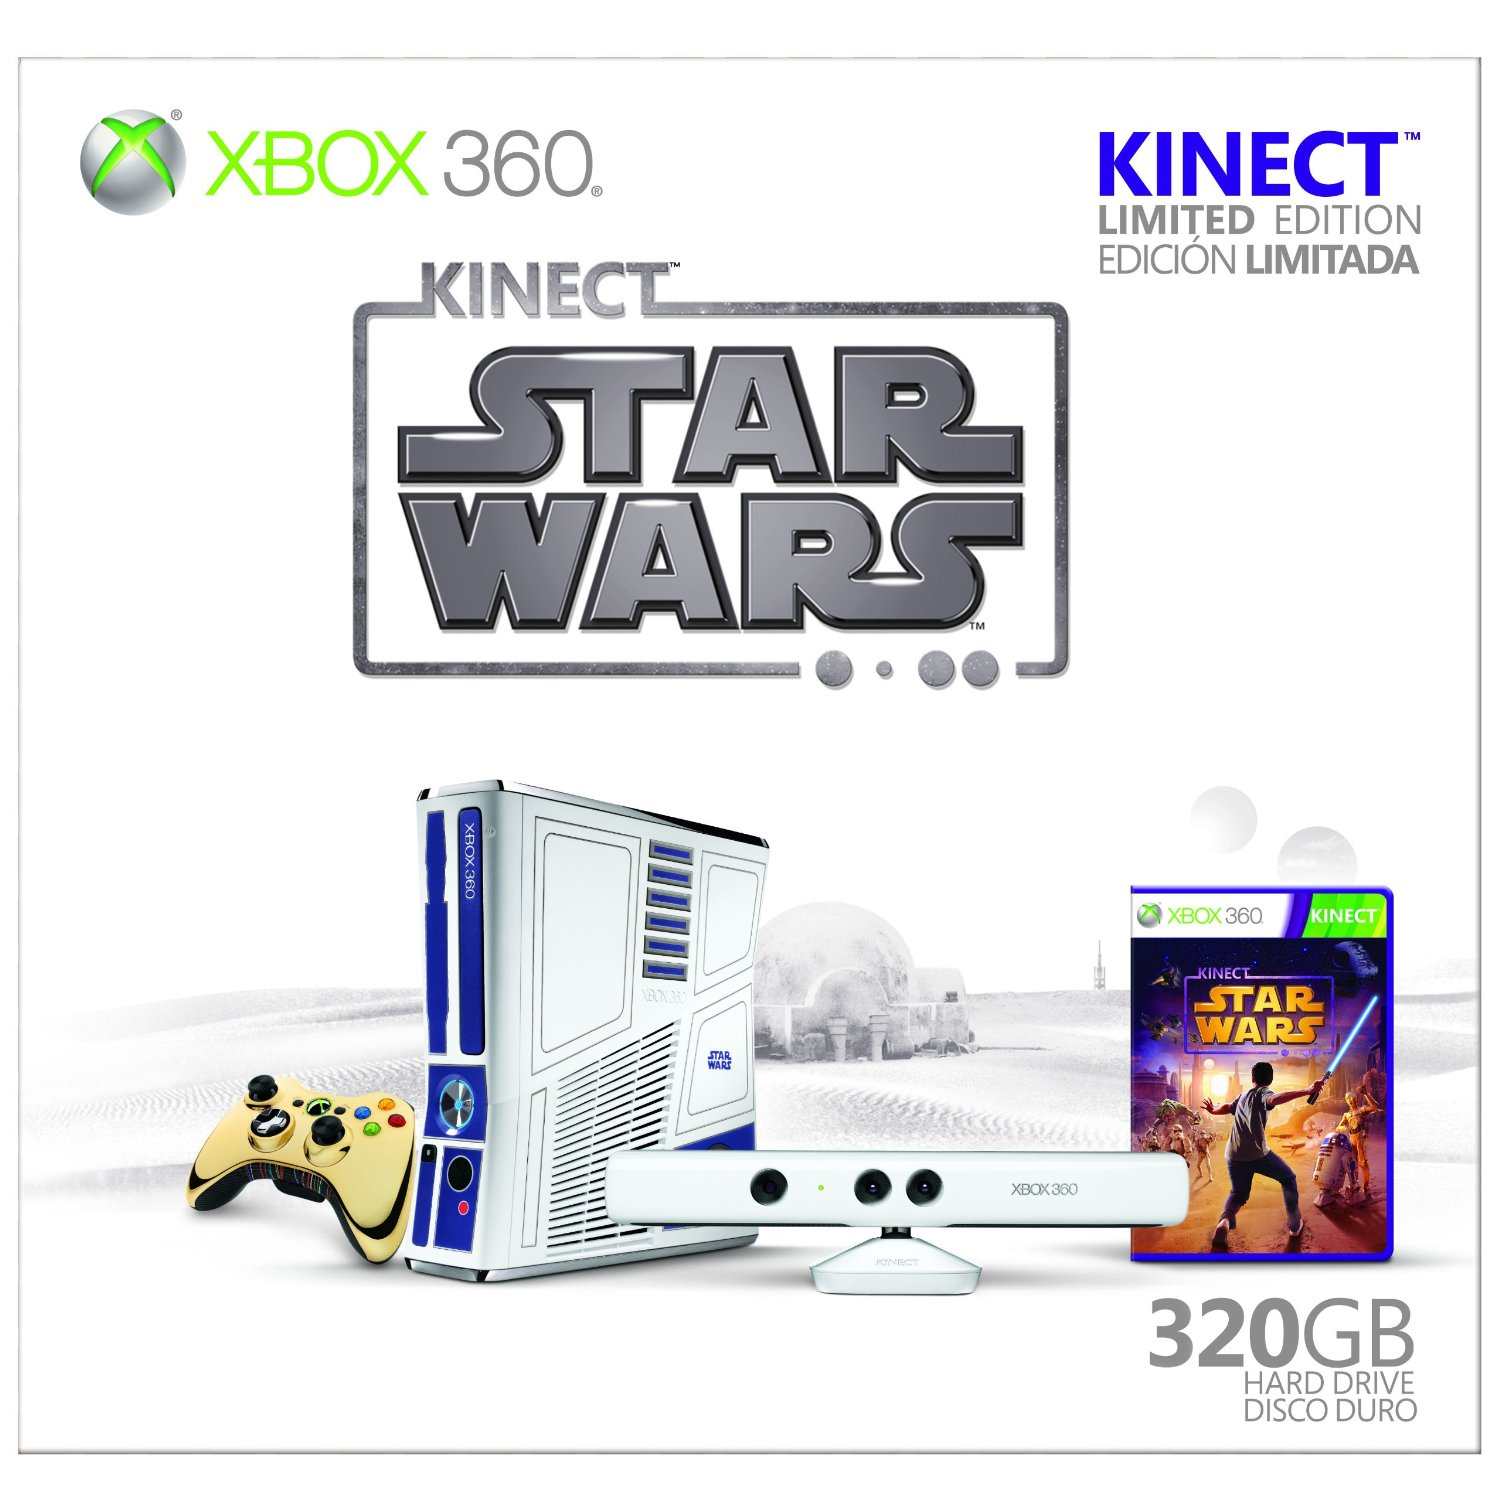 Kinect star wars xbox 360 bundle review and unboxing.